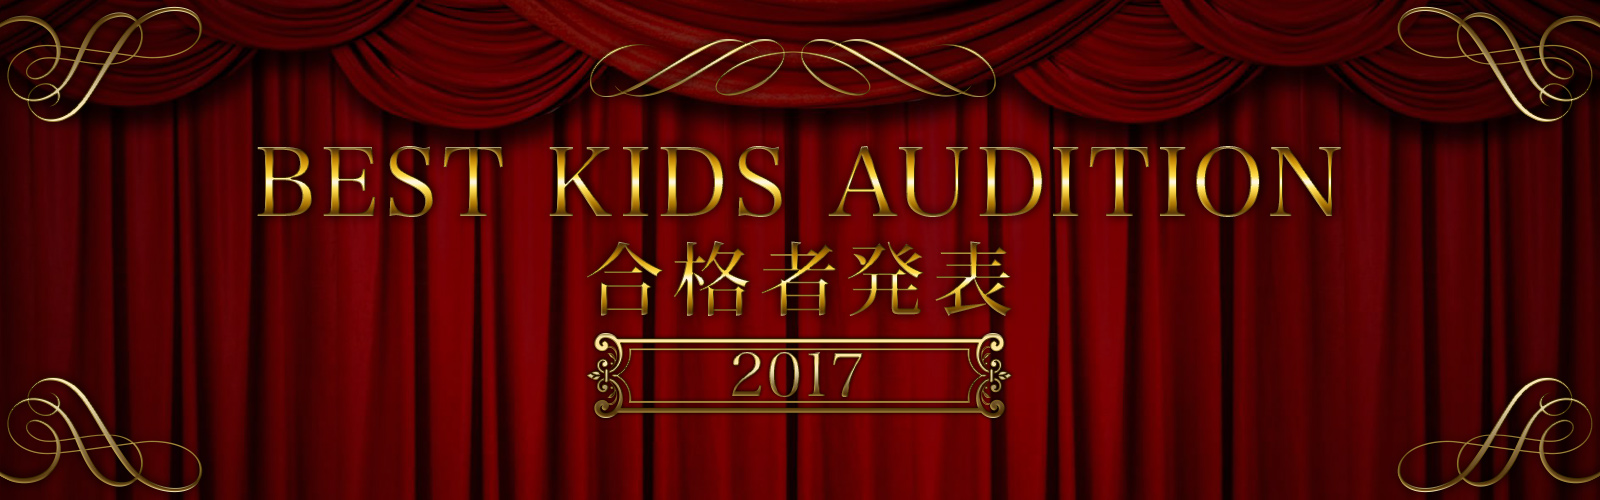 BEST KIDS AUDITION 2017 合格者発表